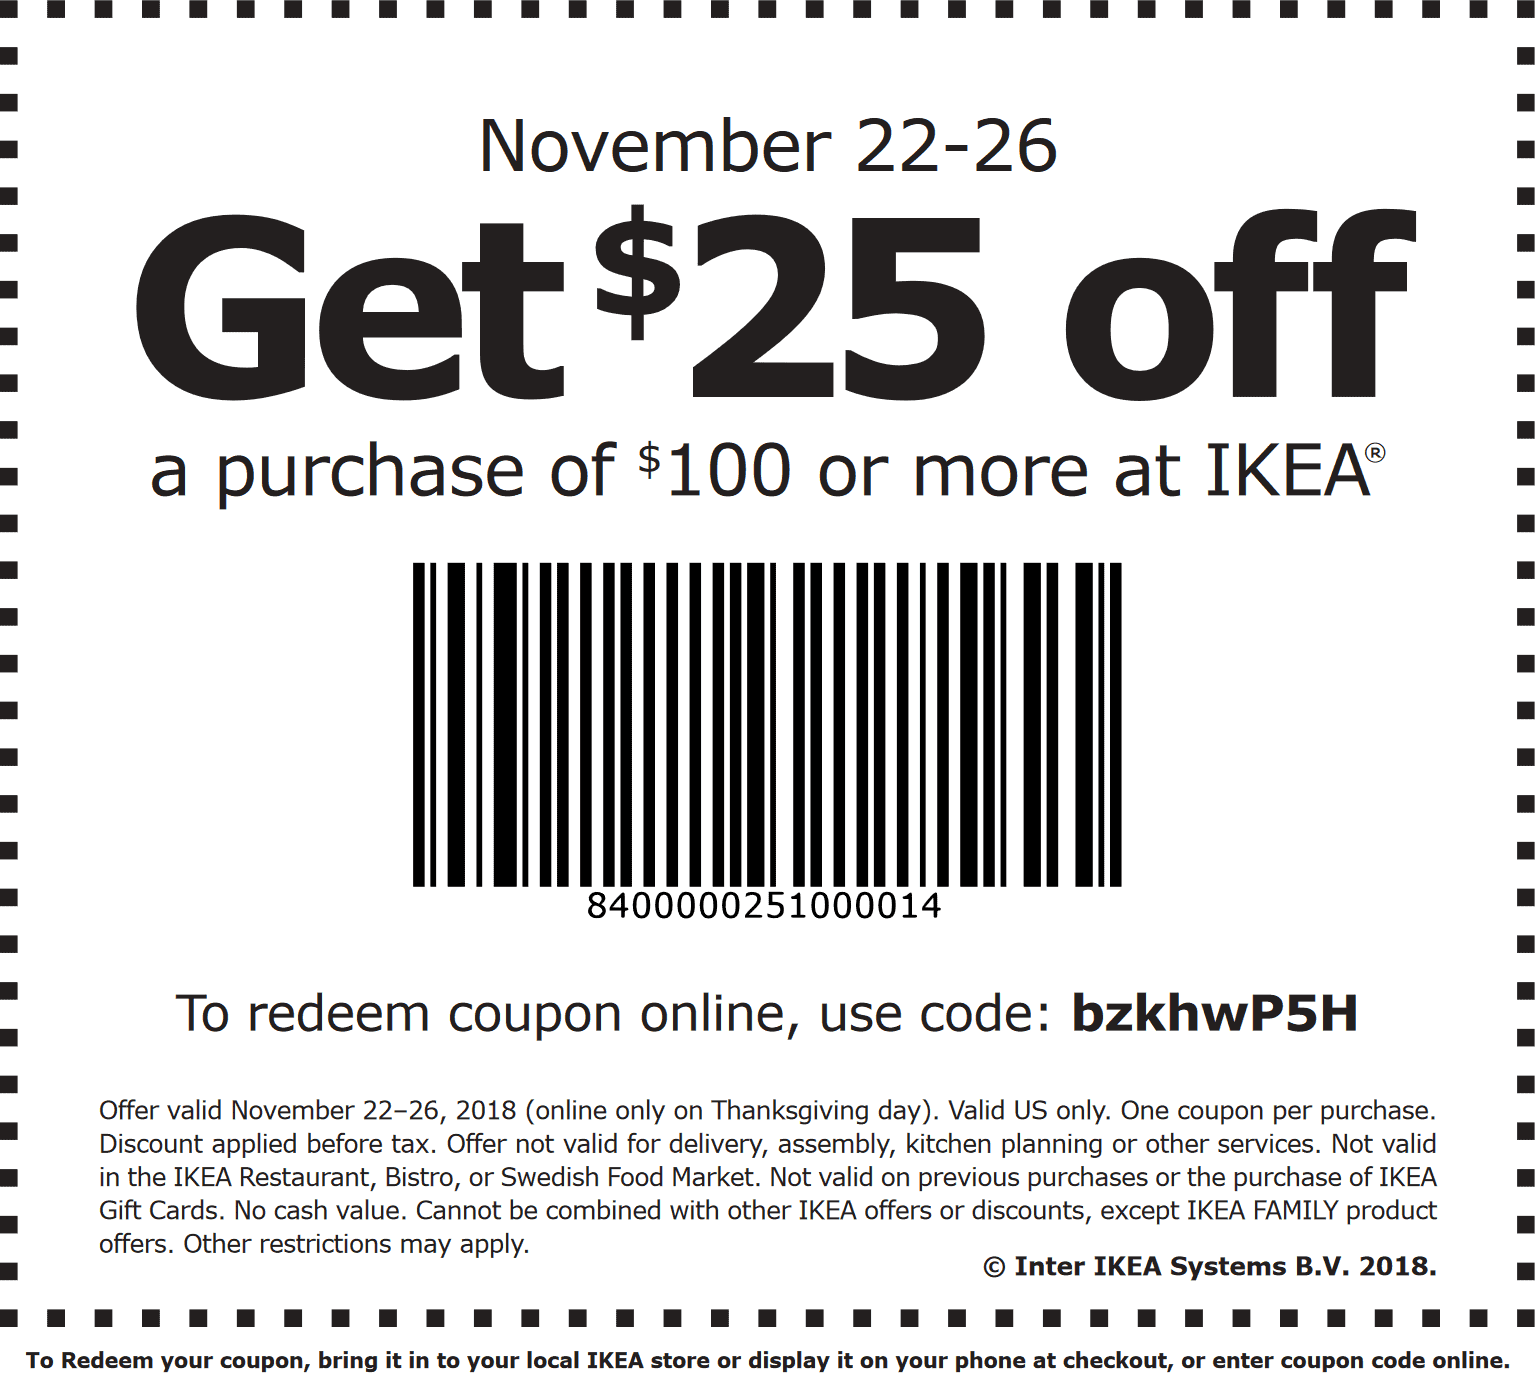 IKEA Coupon August 2020 $25 off $100 at IKEA, or online via promo code bzkhwP5H